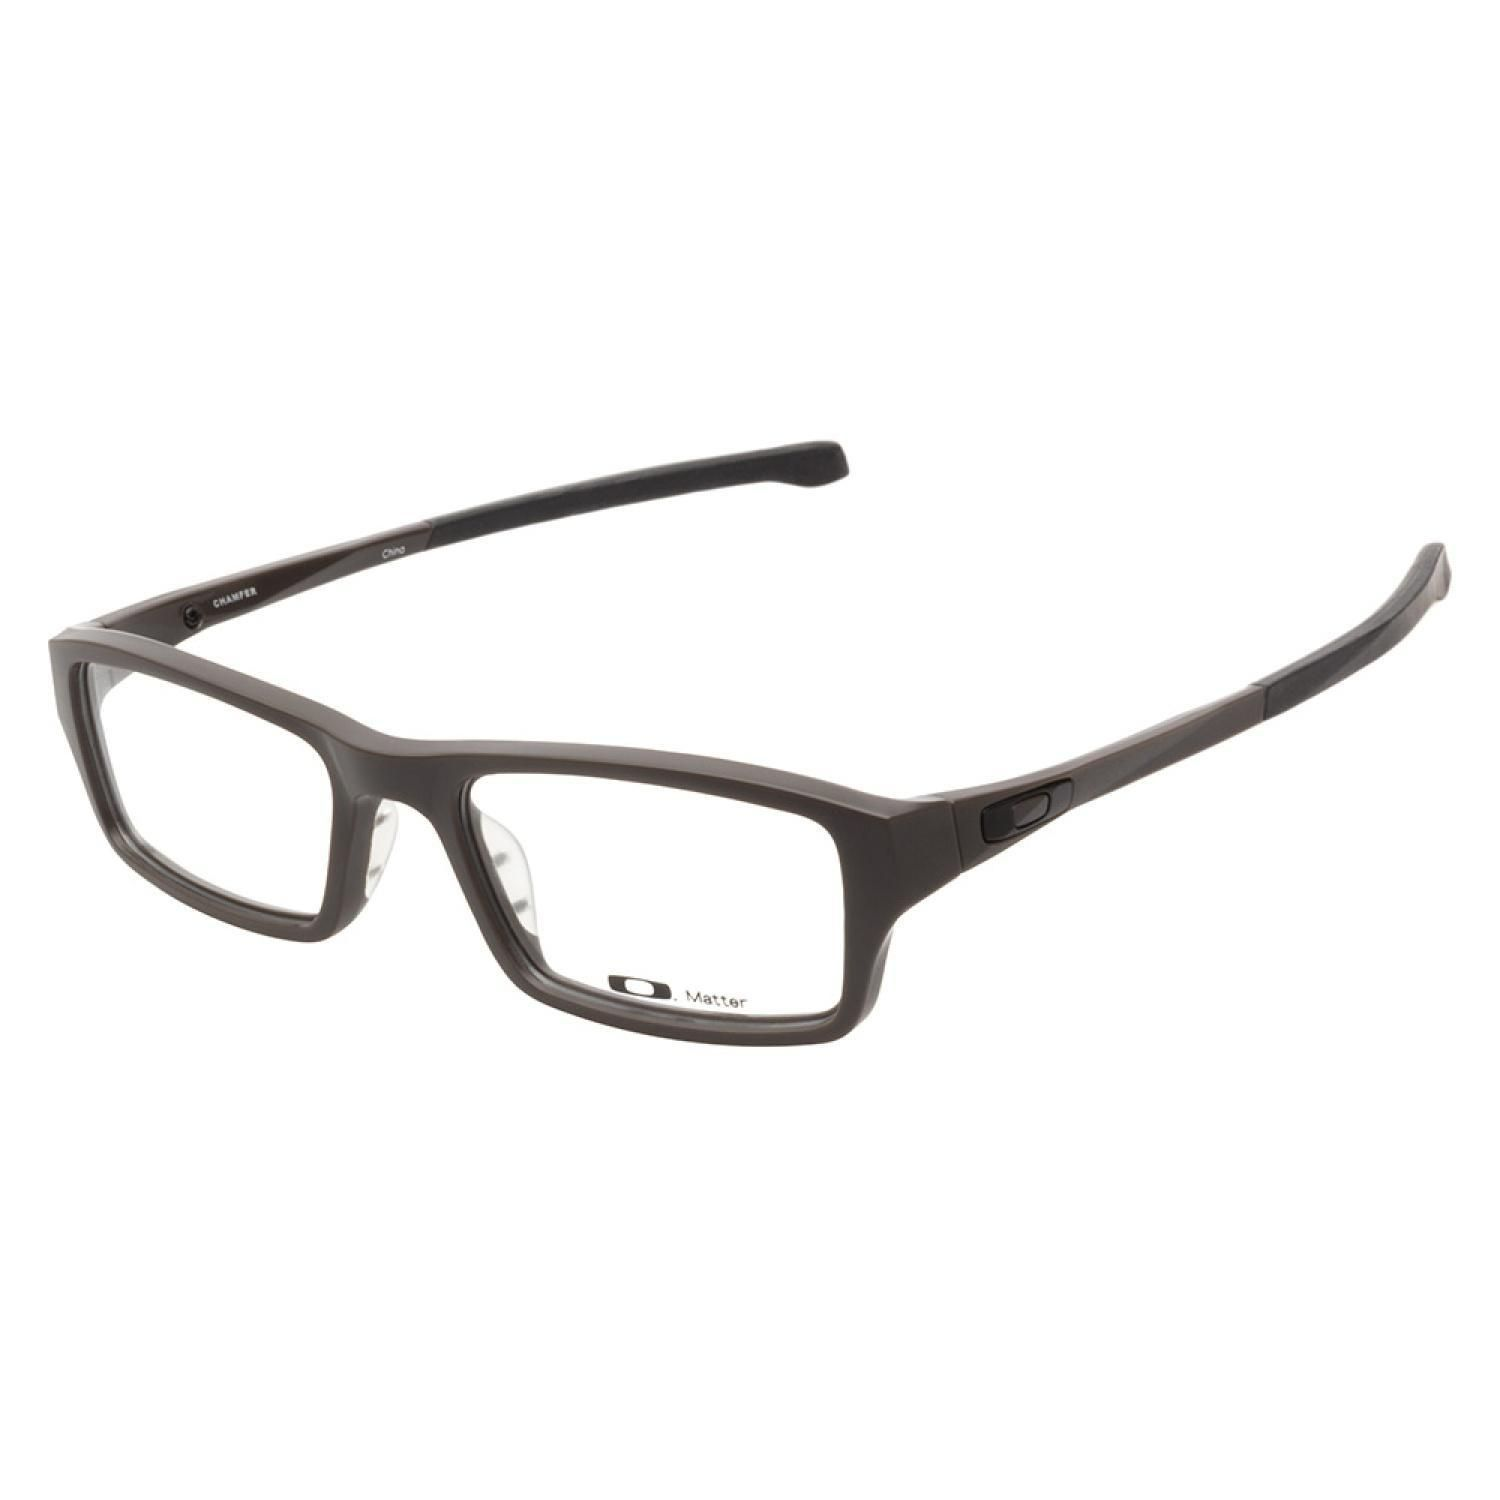 oakley prescription sunglasses delivery time  shop for oakley chamfer 8039 0251 satin flint prescription eyeglasses. get free delivery at your online accessories store! get in rewards with club o!